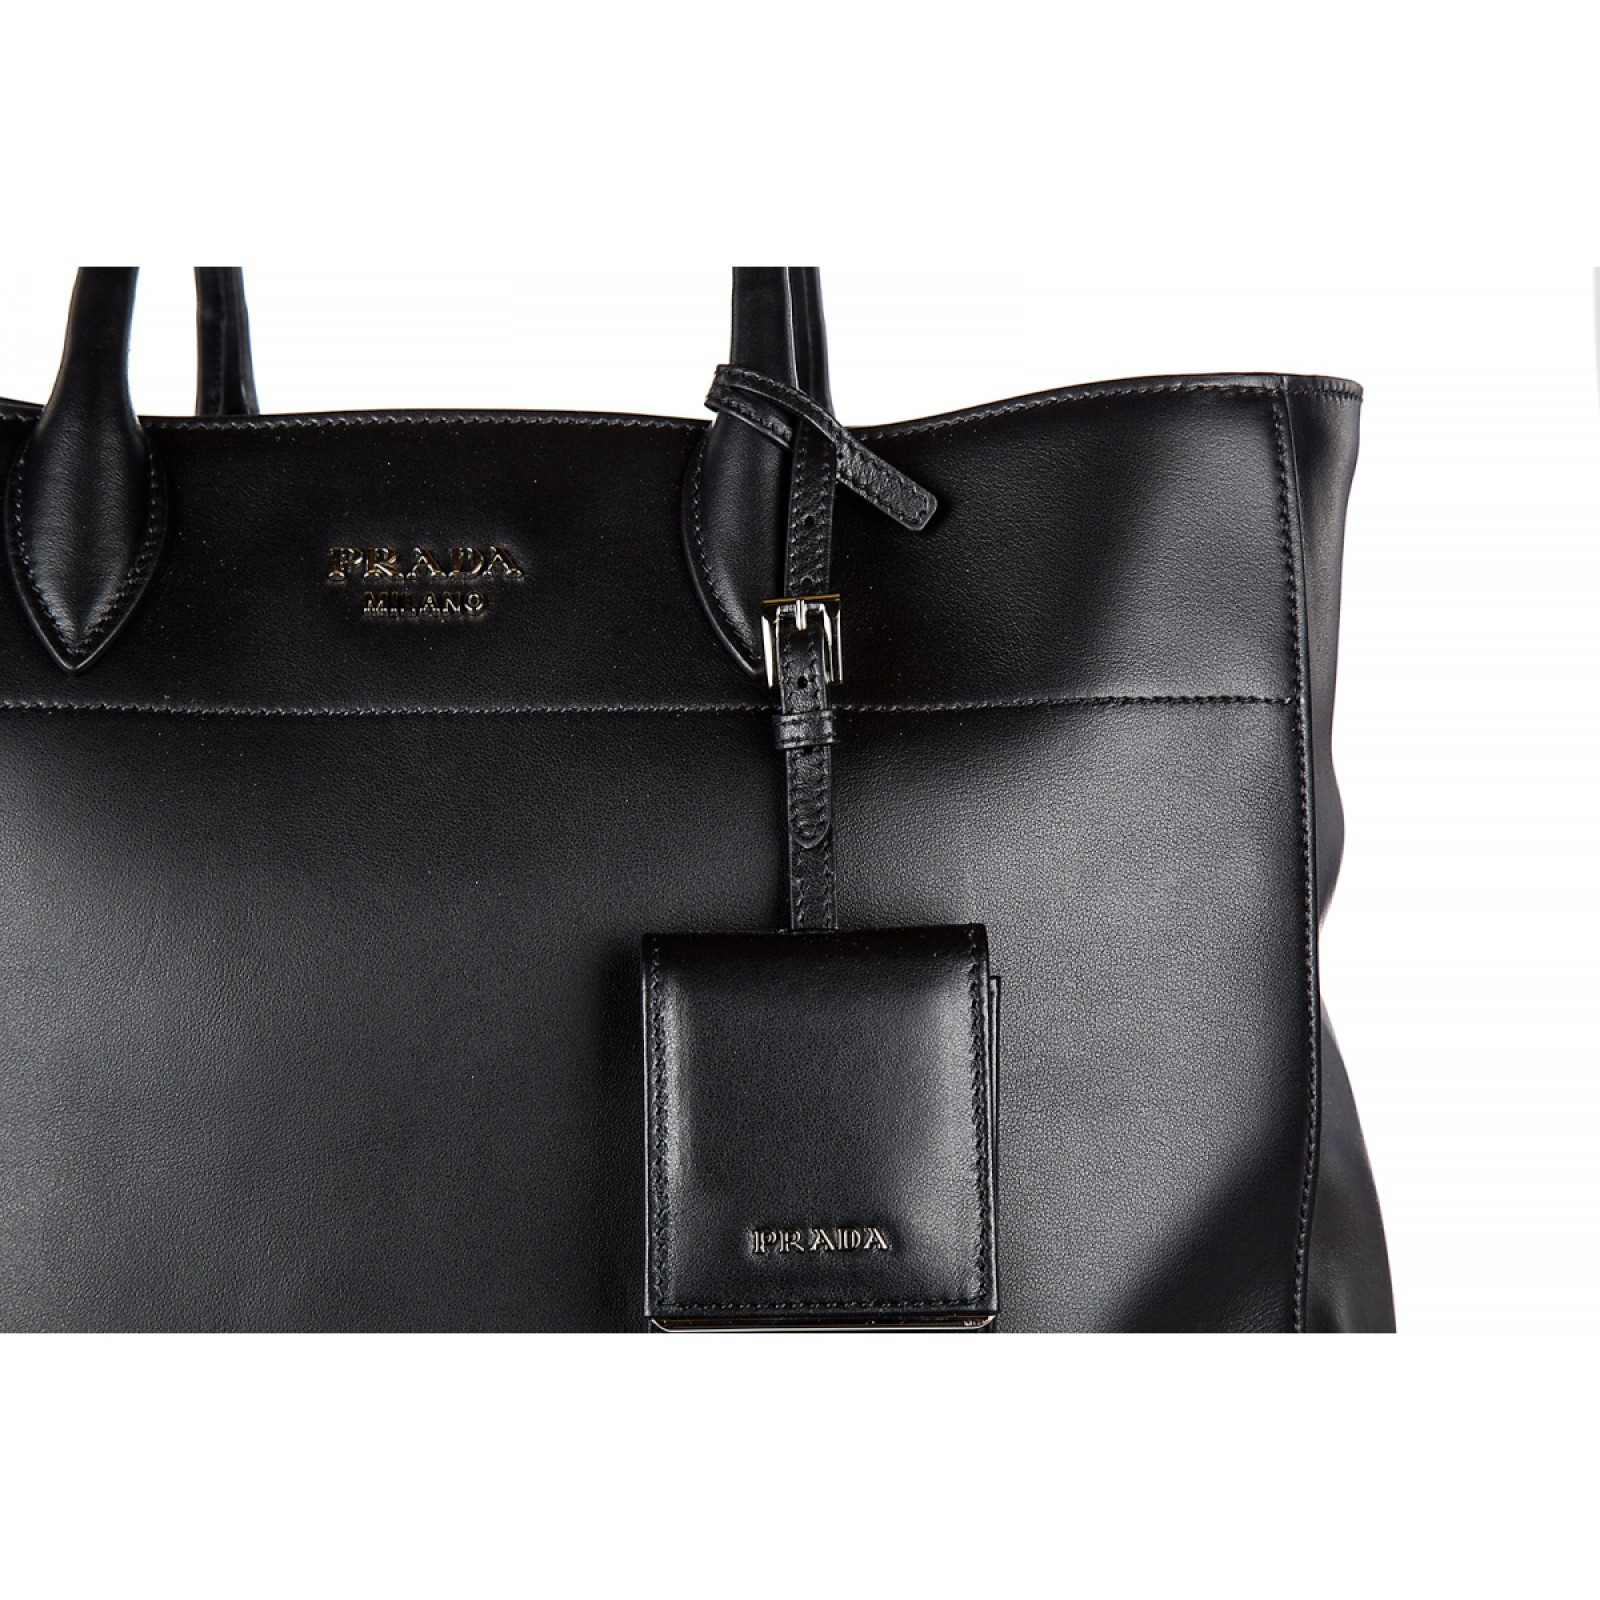 送料込 leather handbag shopping bag purse バッグ